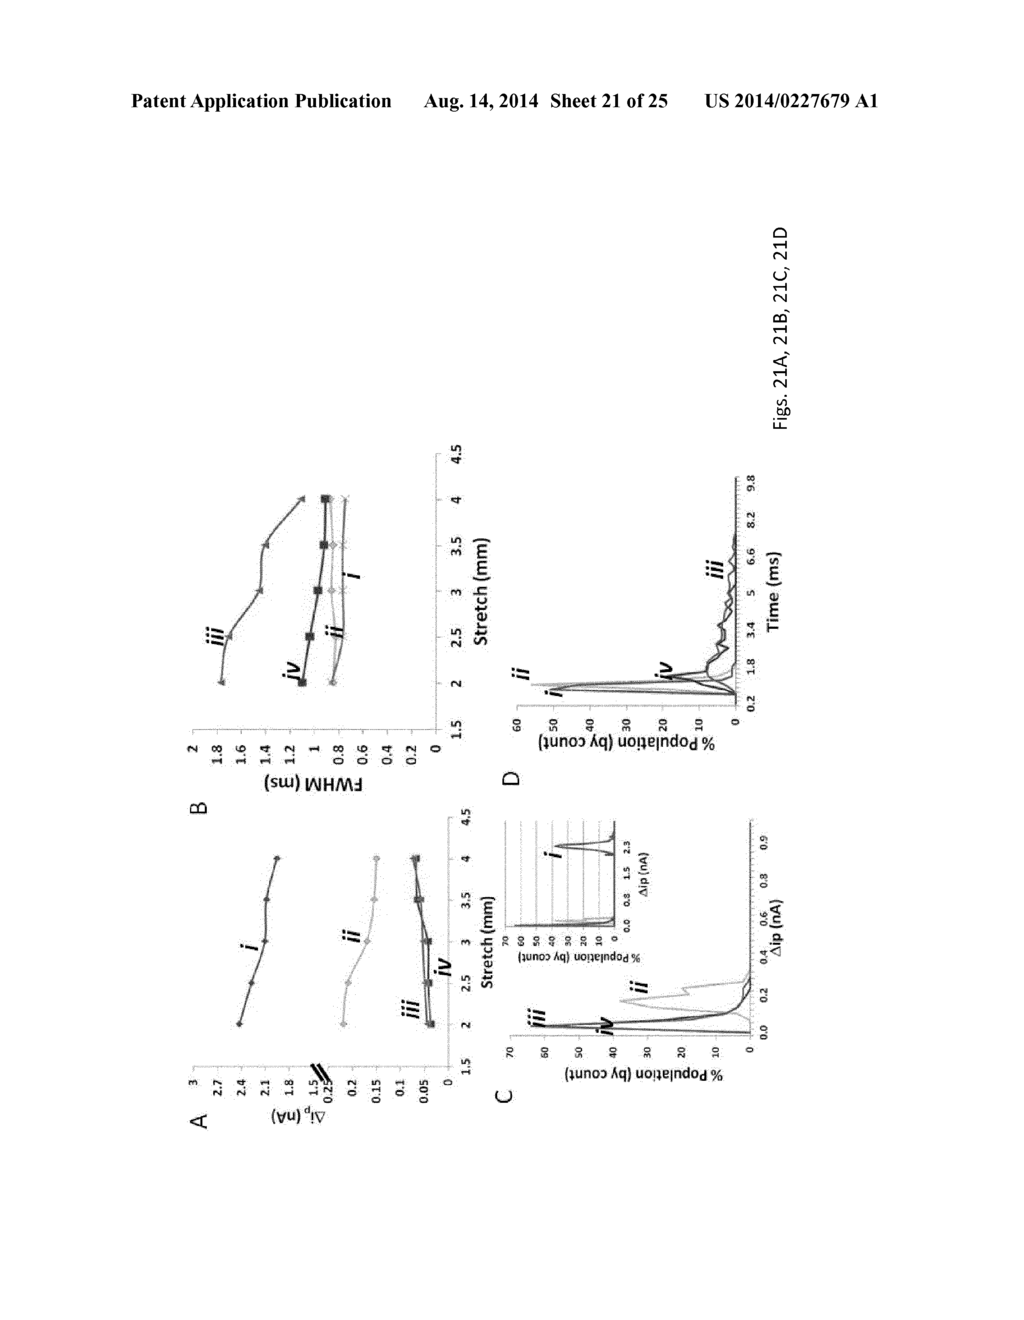 hight resolution of magnetic bead aggregation assay system diagram schematic and image 22